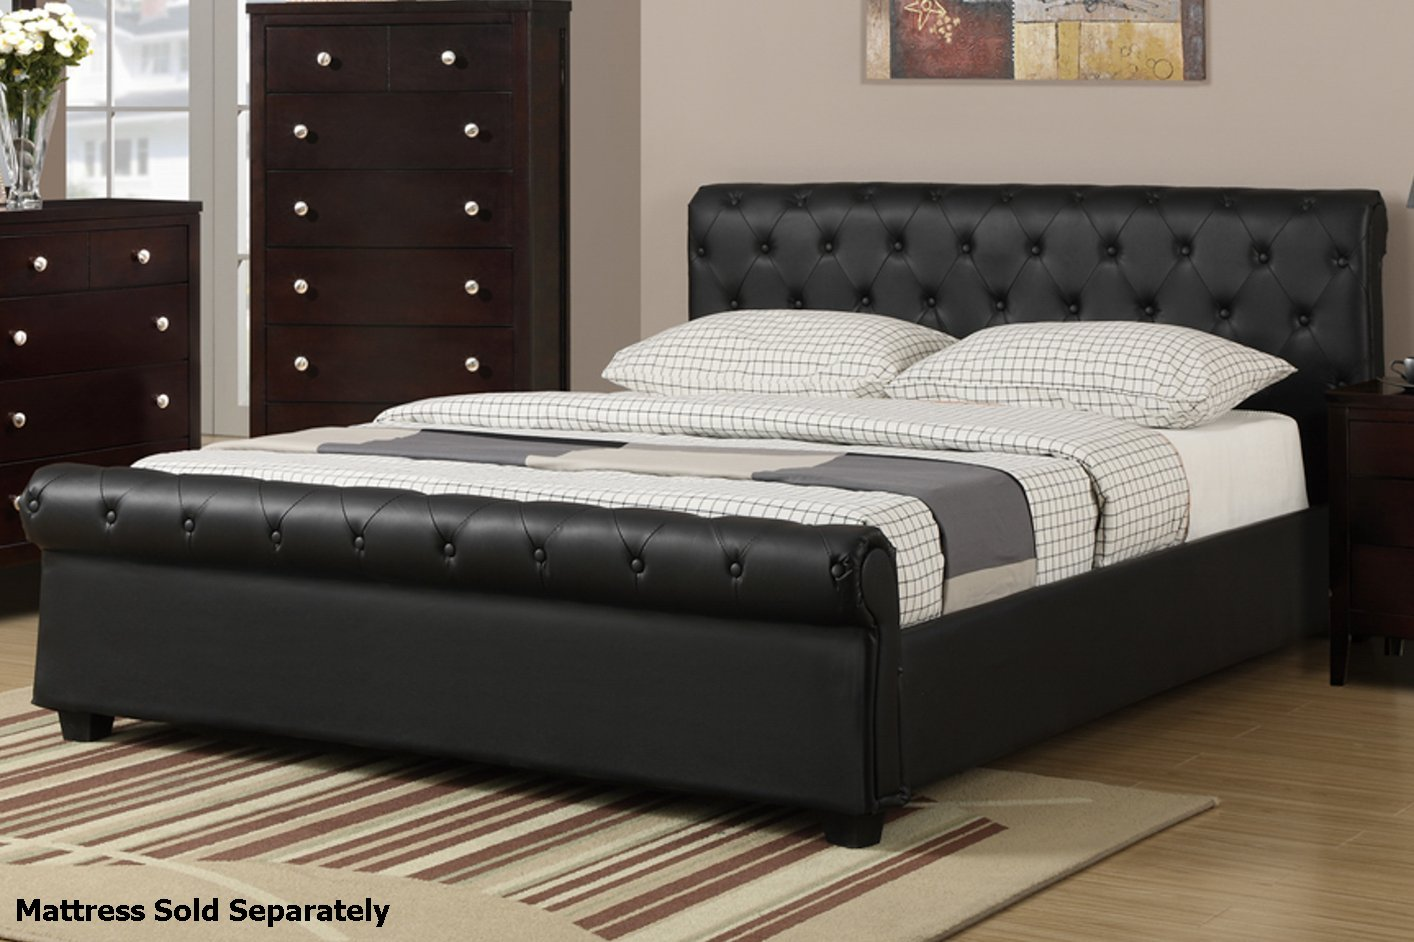 Bedroom Furniture In Dubai Also Image Of Bedroom Furniture Los Angeles